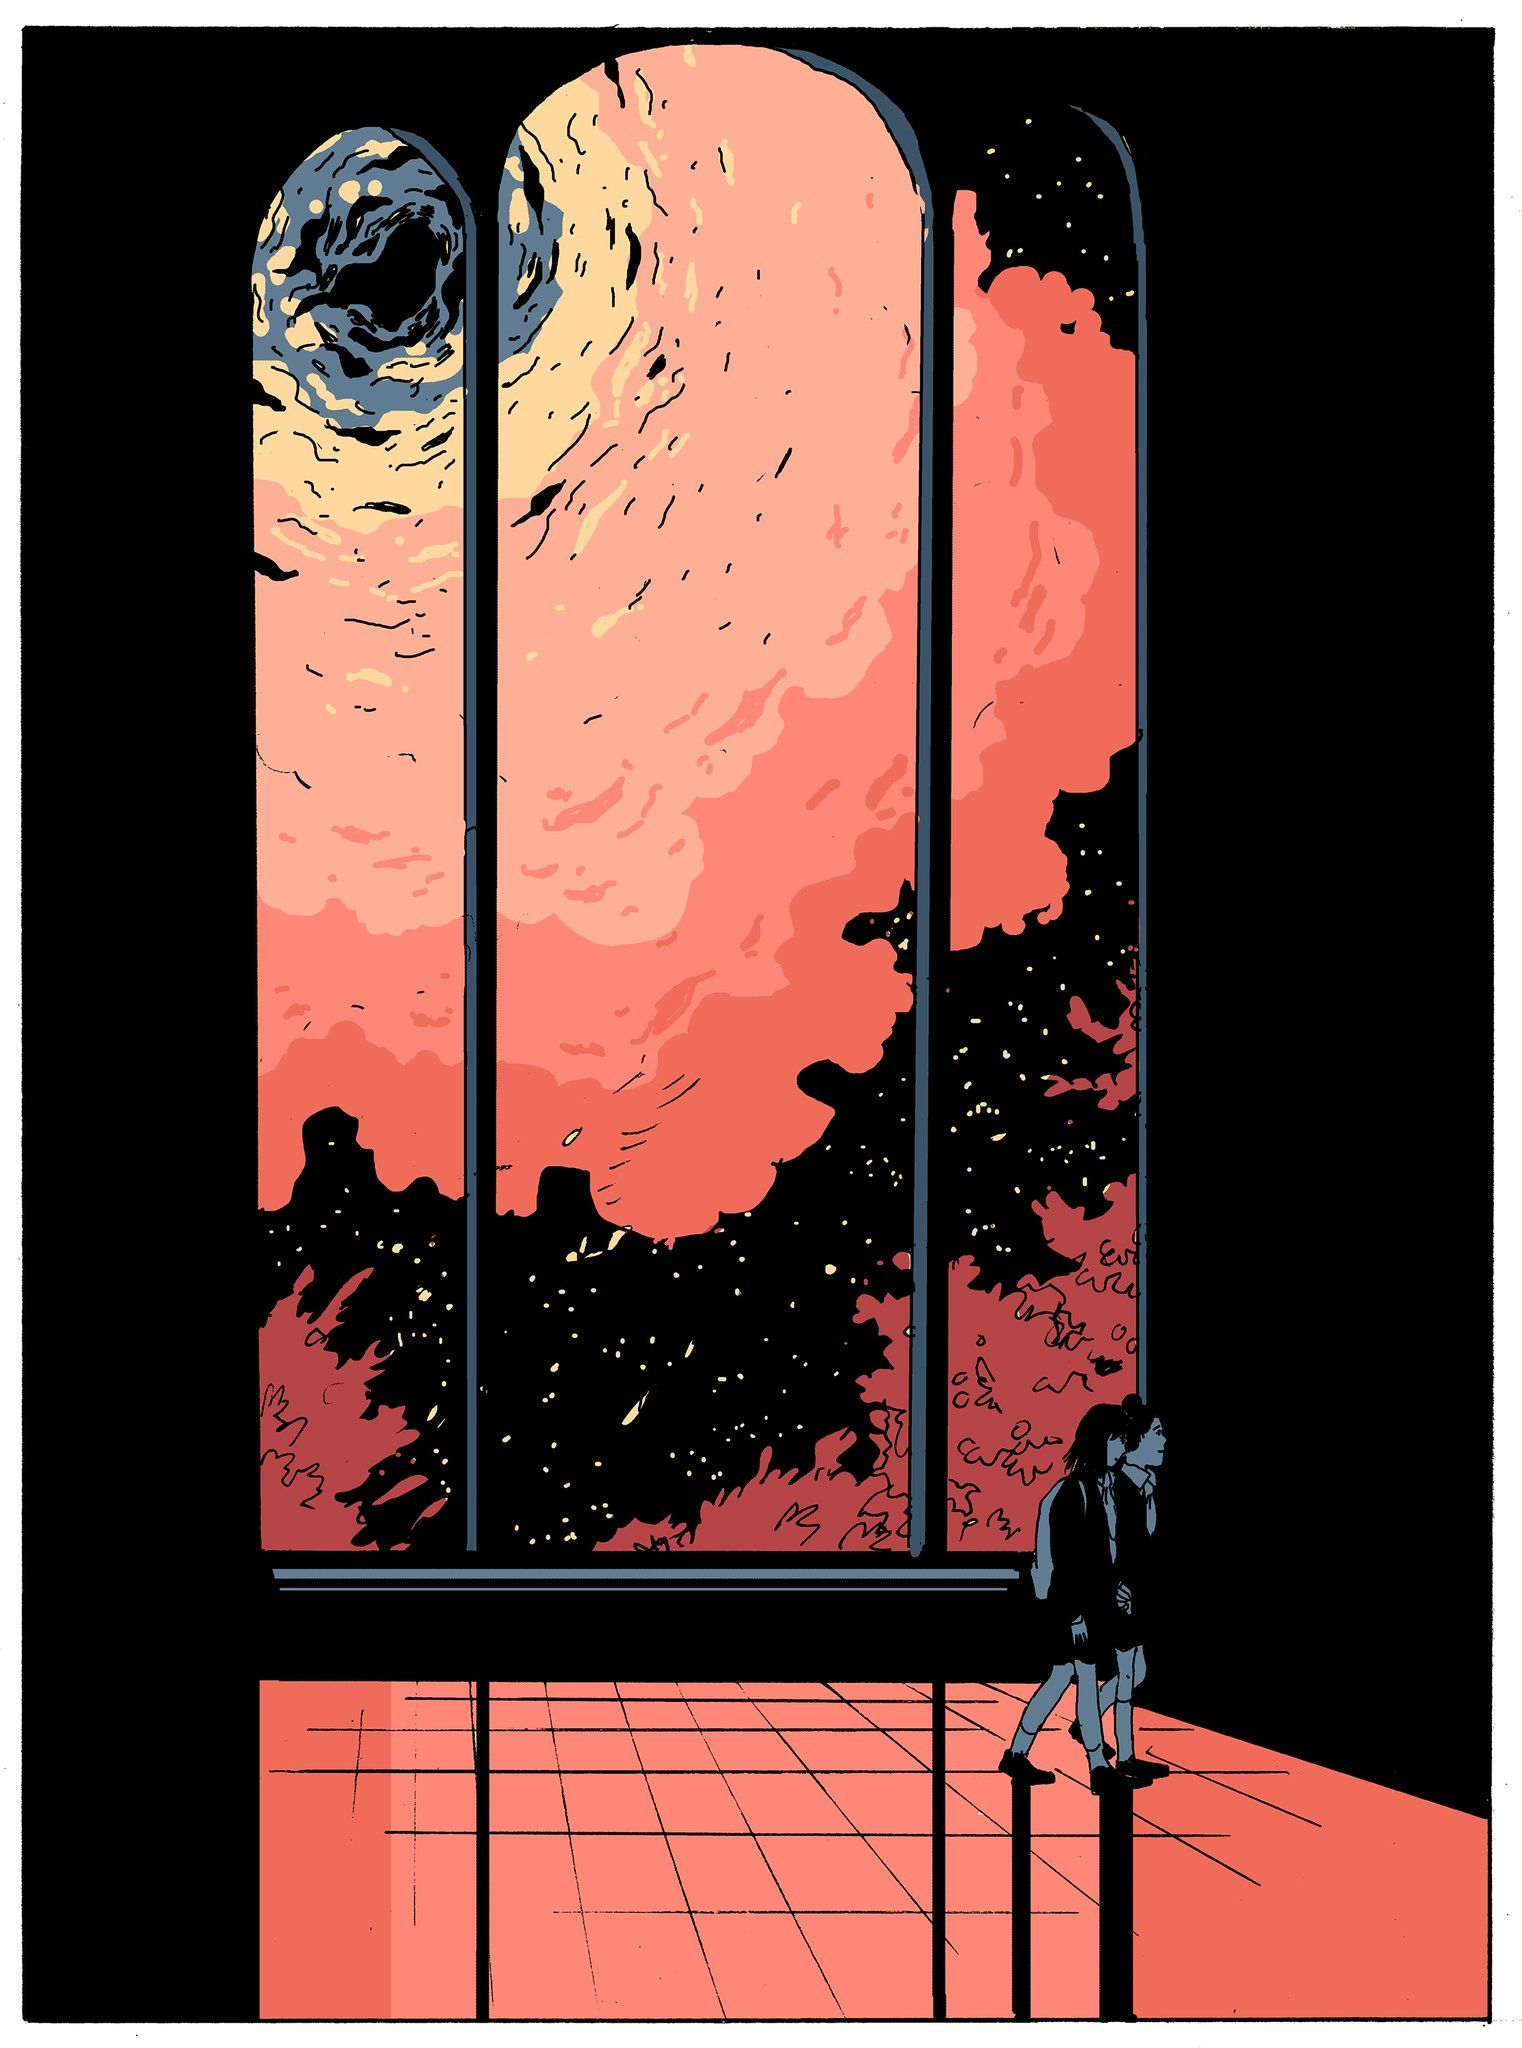 Tillie Walden on | Aesthetic art, Art drawings, Cool art